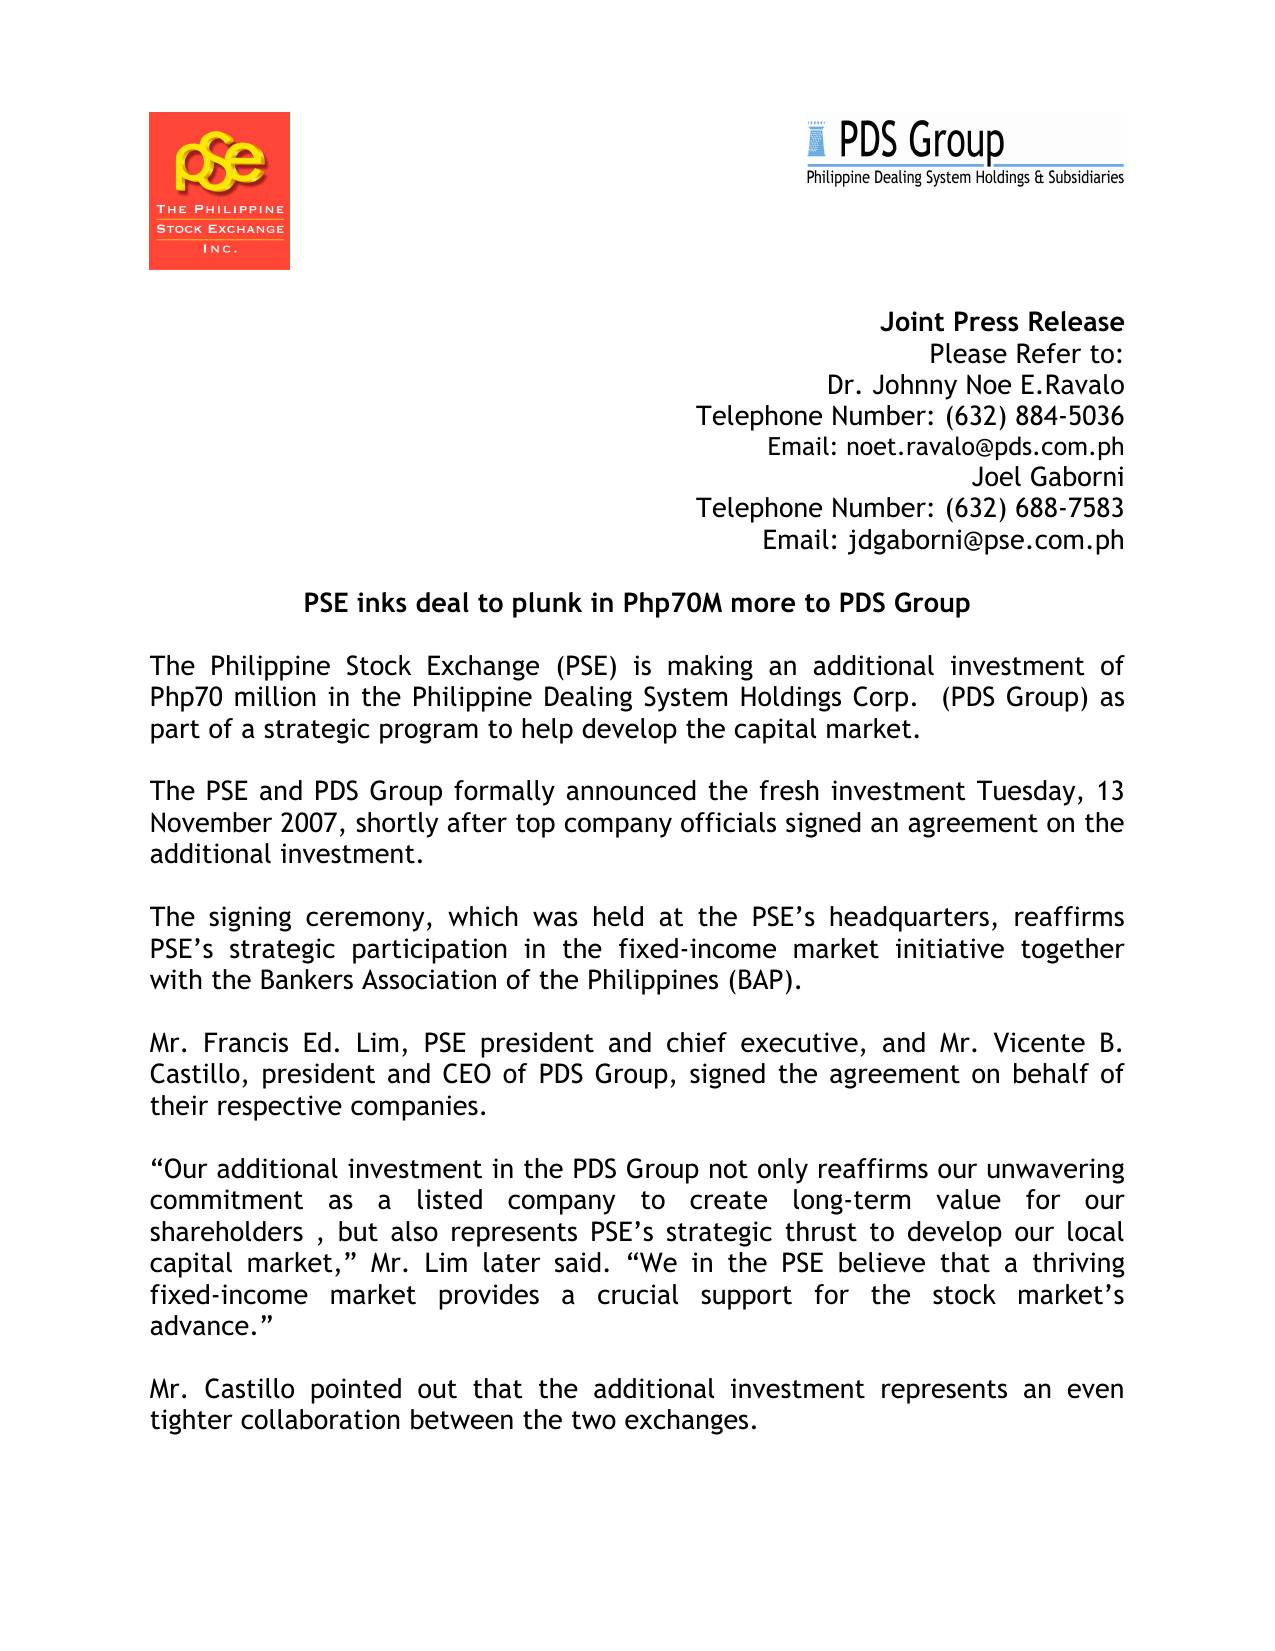 PSE inks deal to plunk in PhP70 Million more to PDS Group